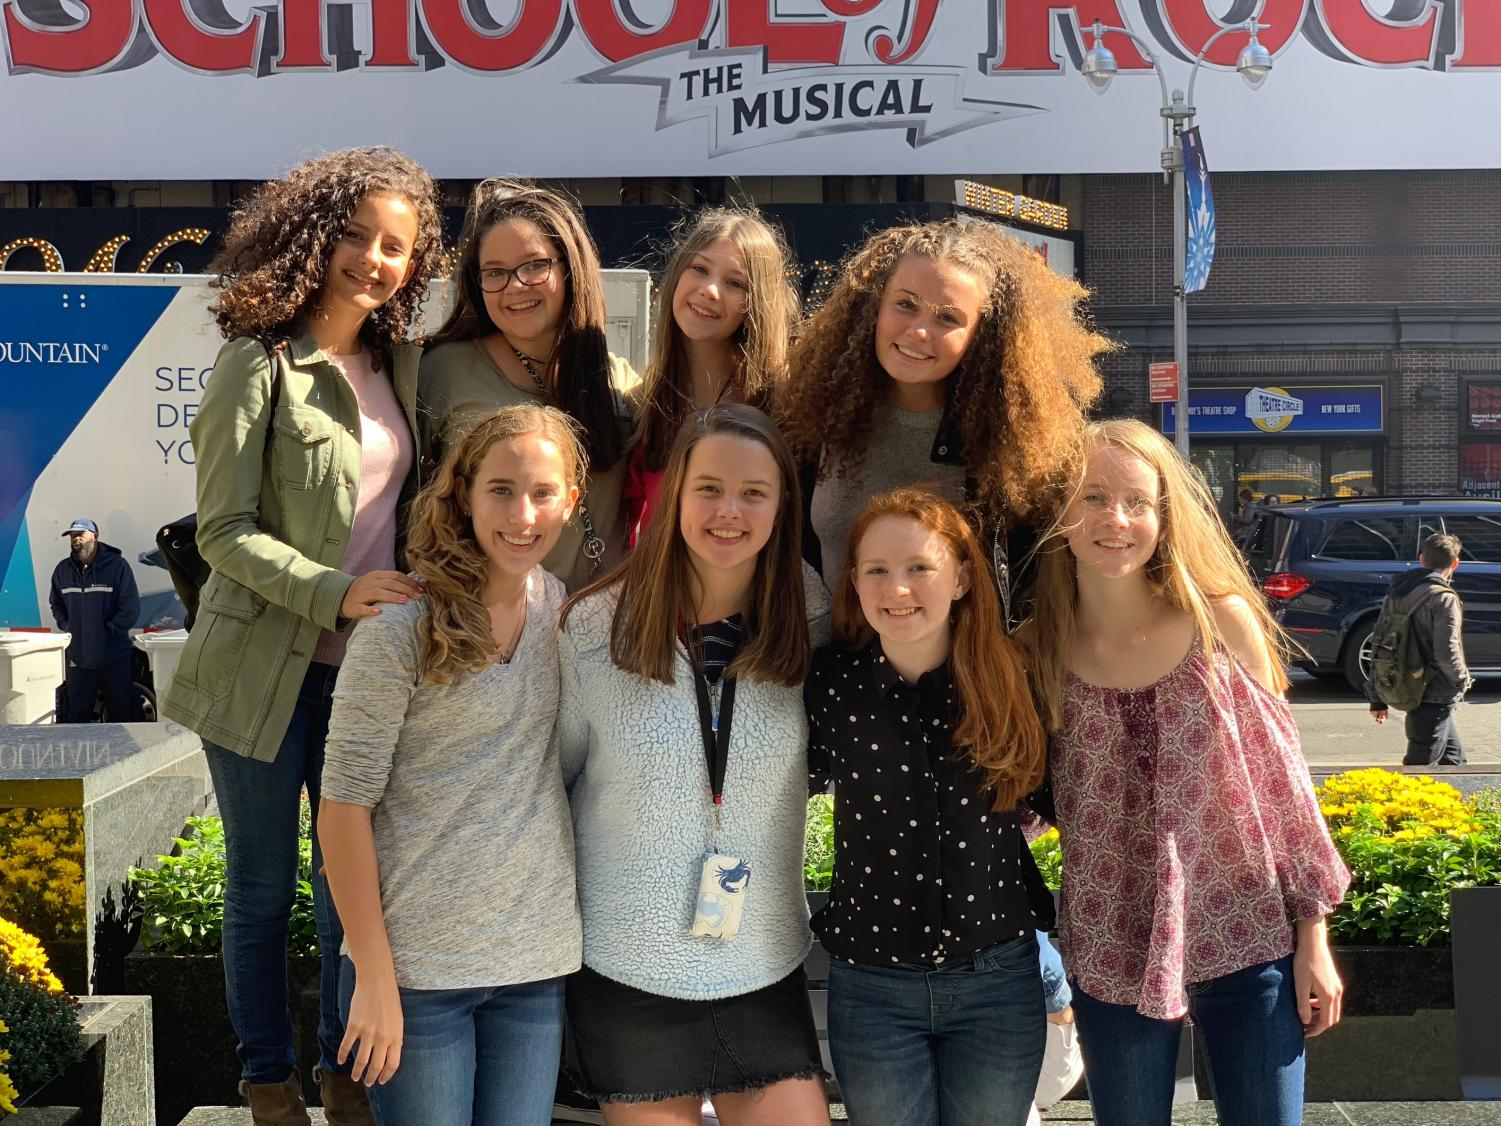 Spalding students in NYC to see the musical